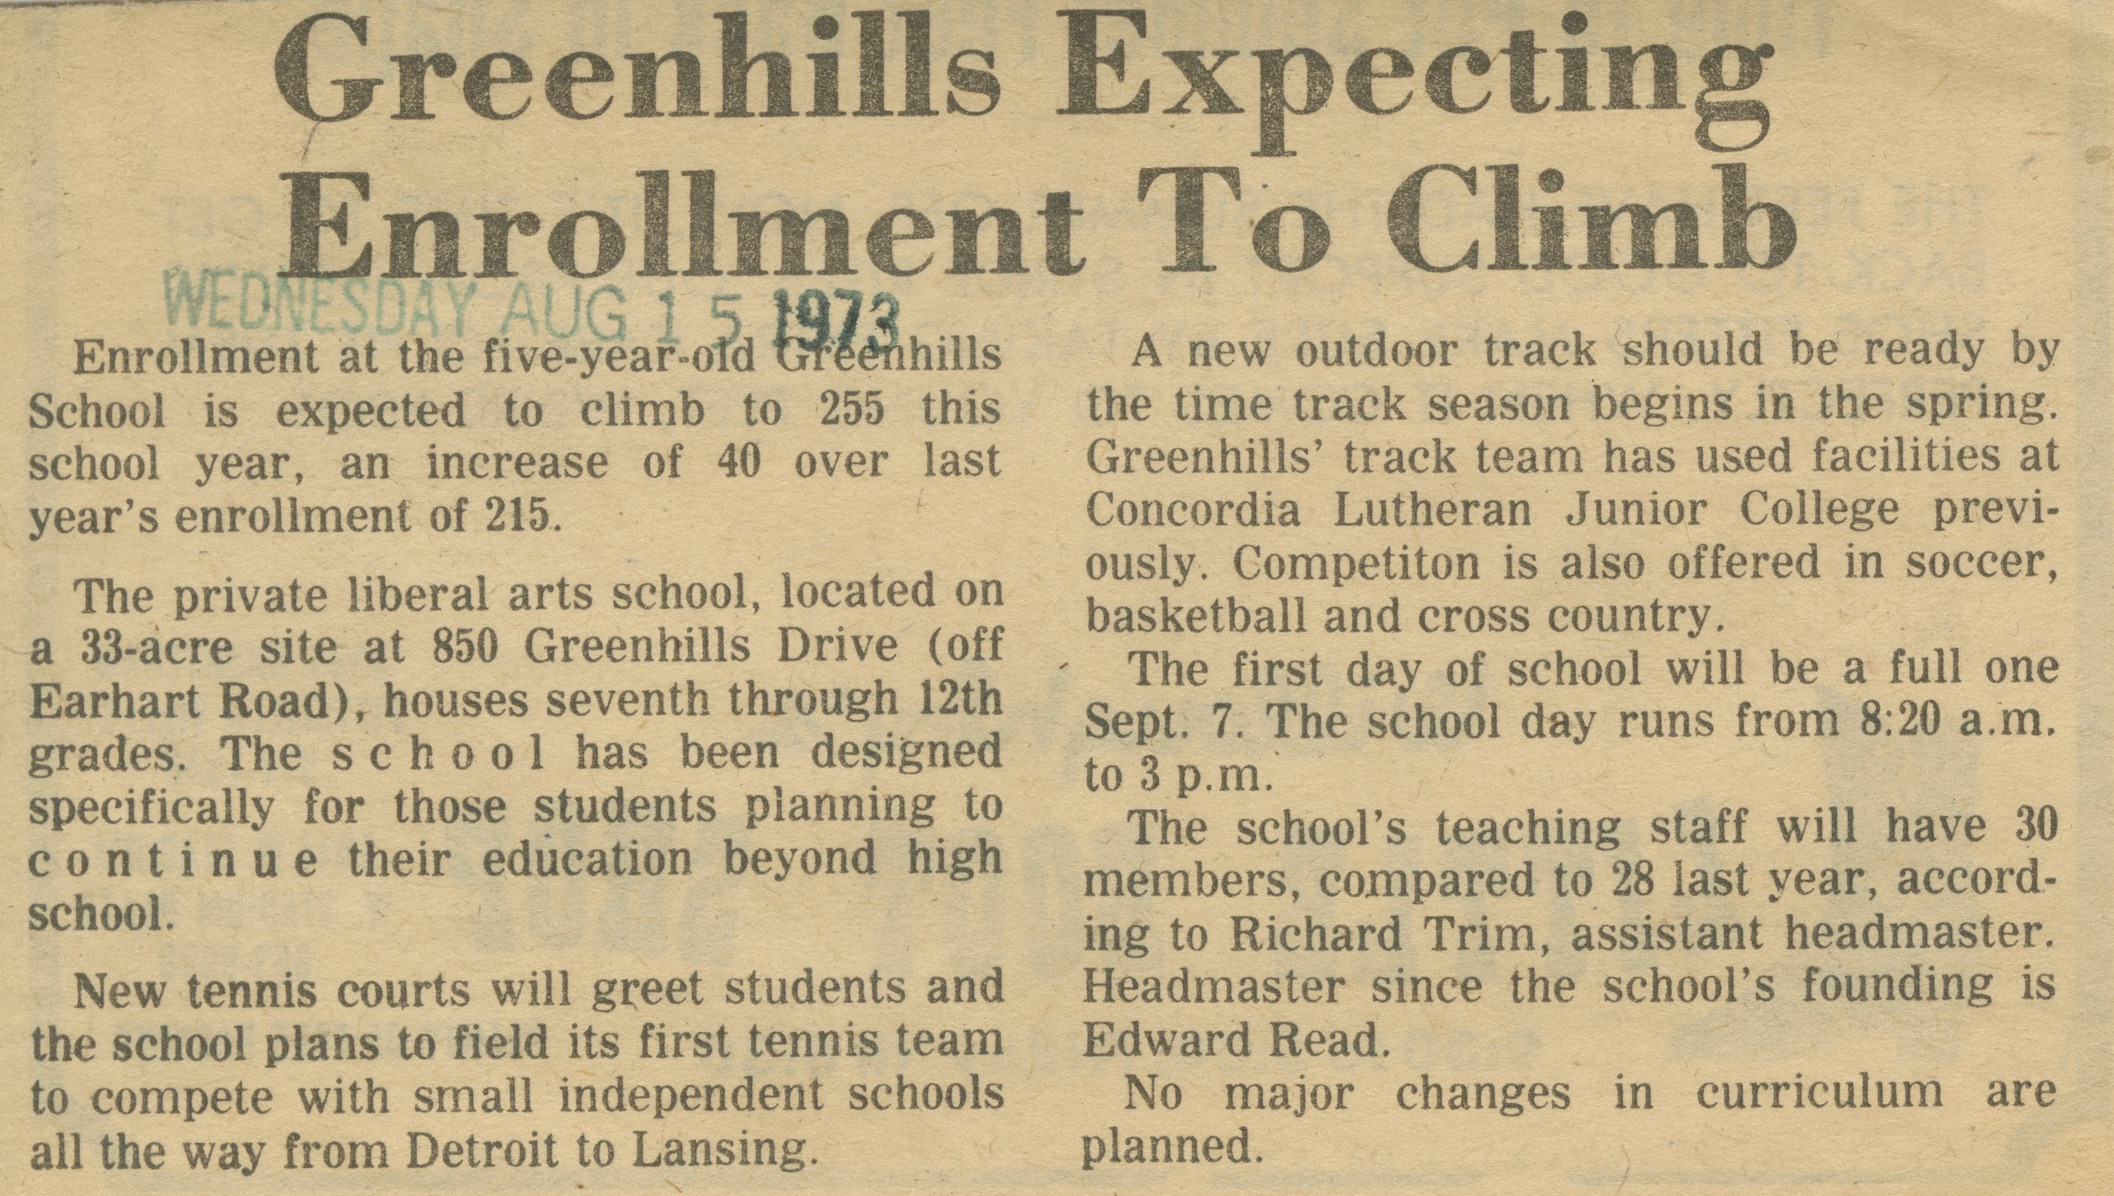 Greenhills Expecting Enrollment To Climb image